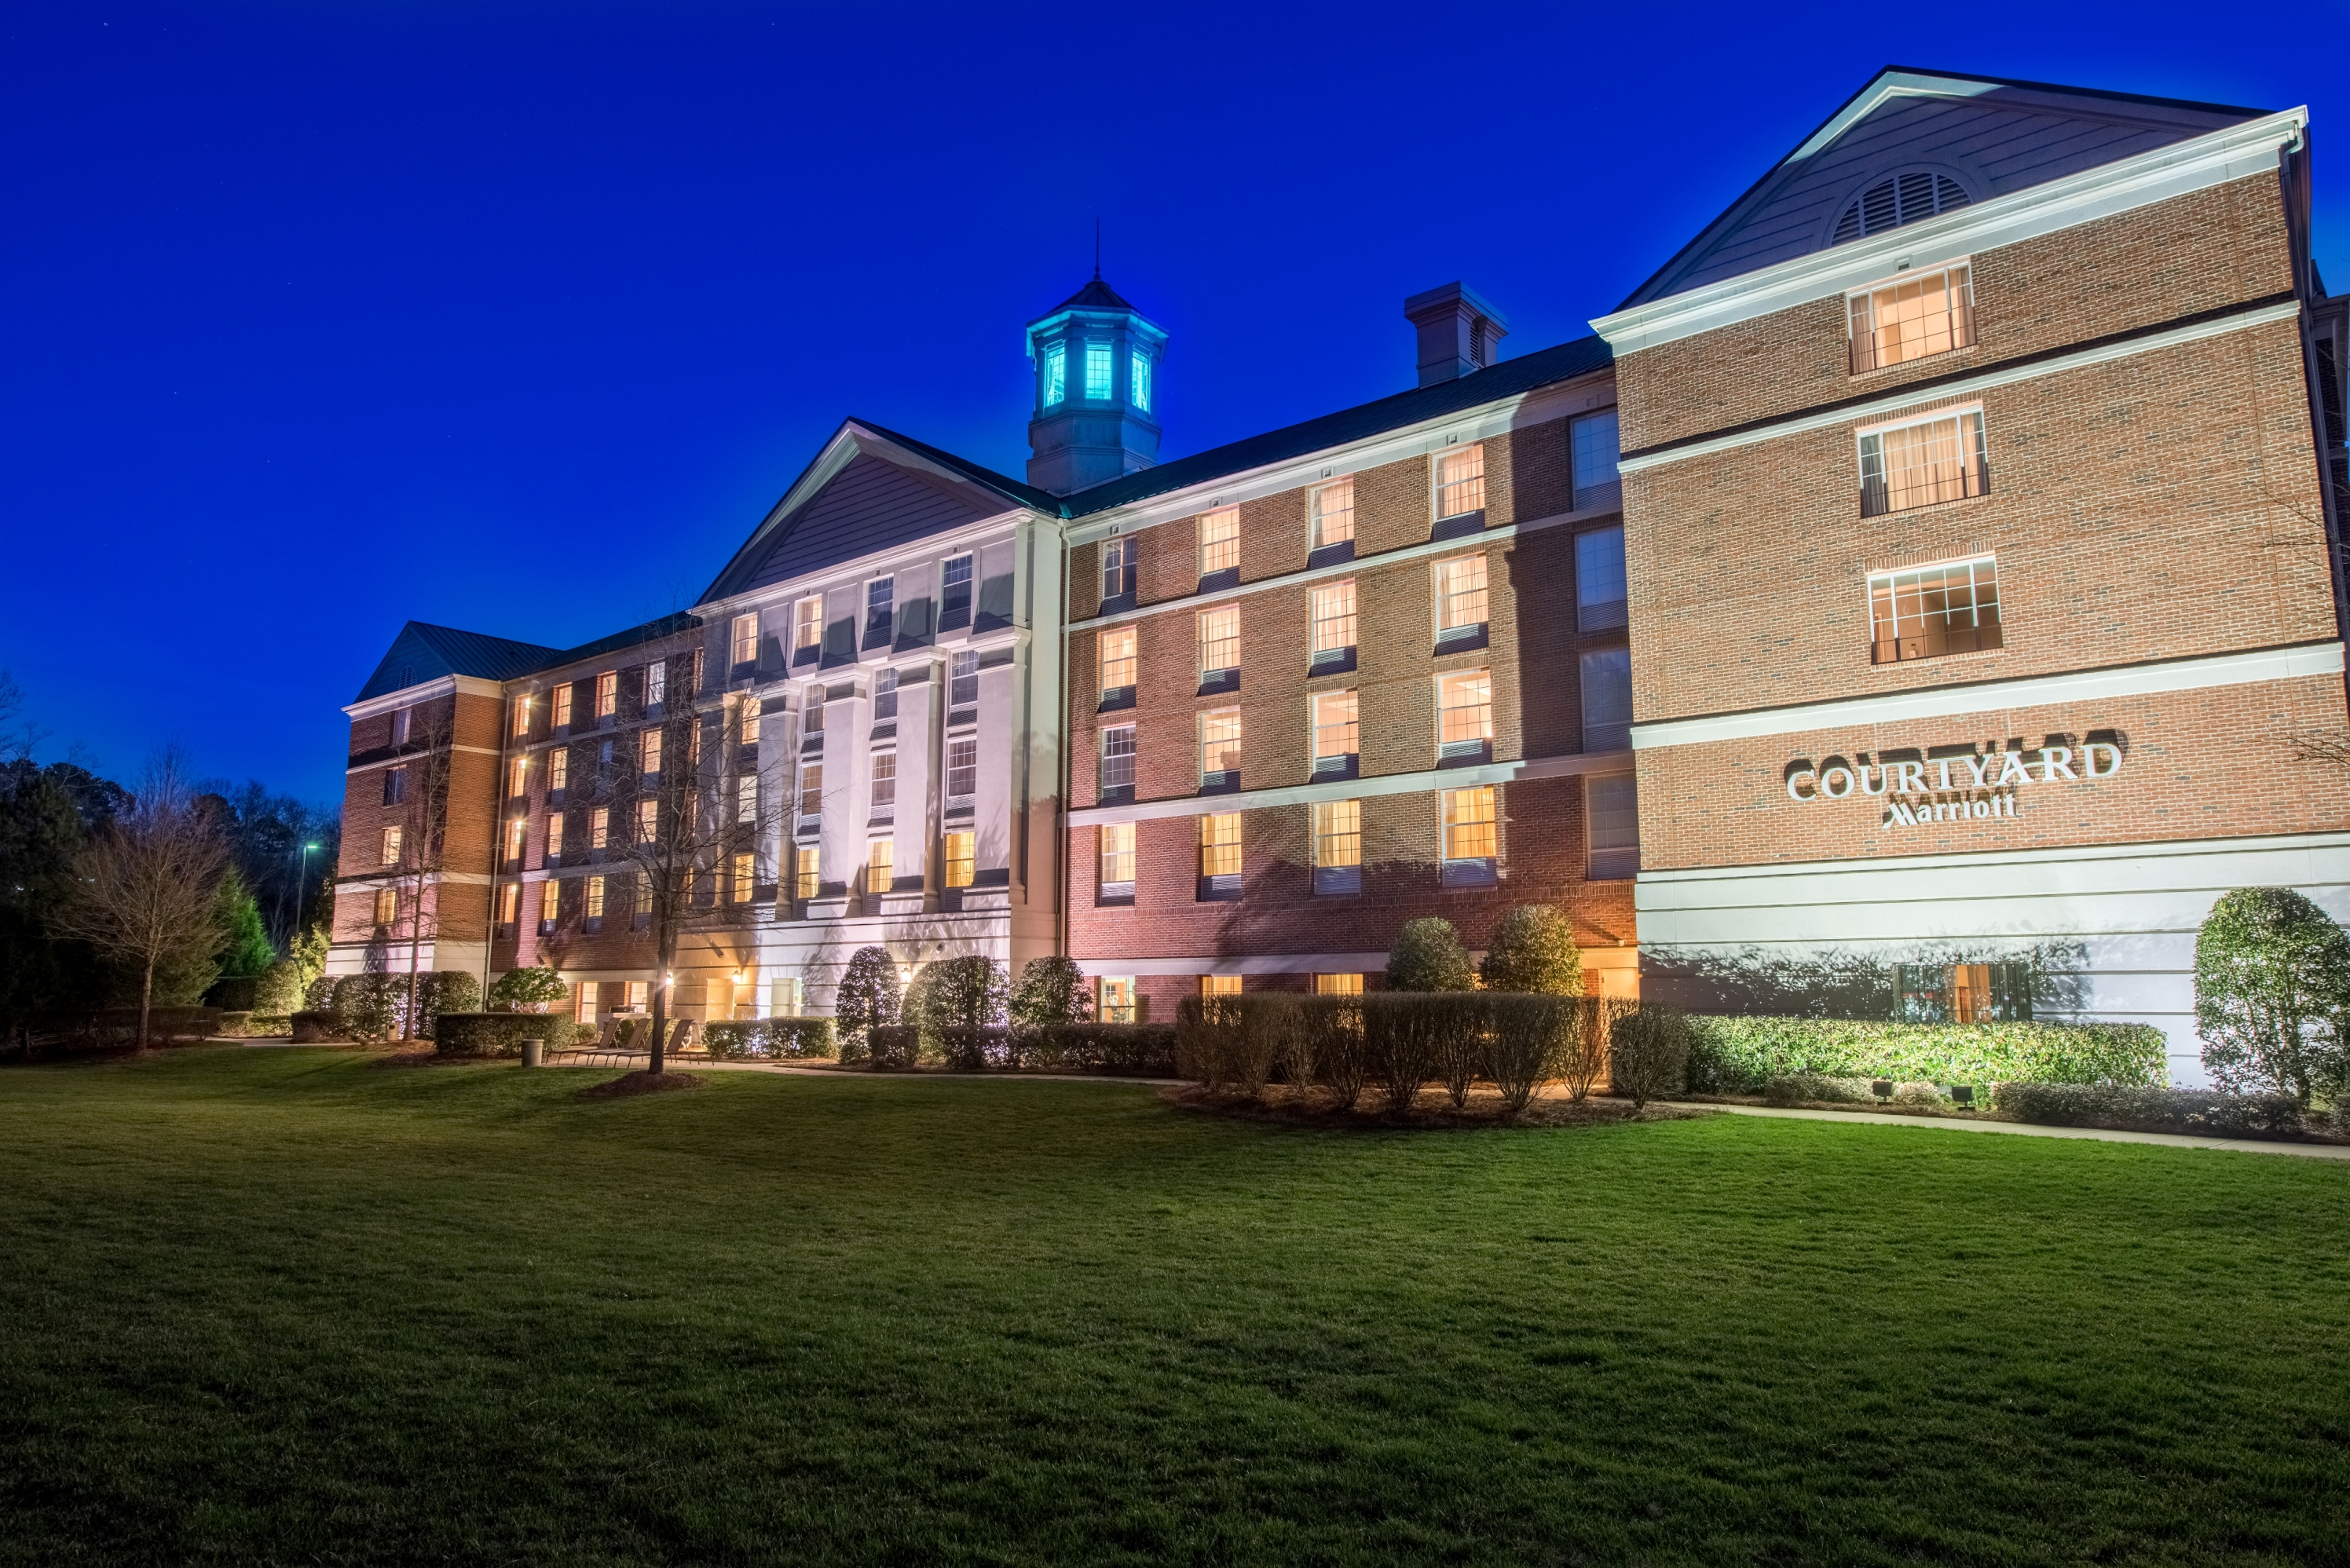 Courtyard by Marriott Chapel Hill image 18